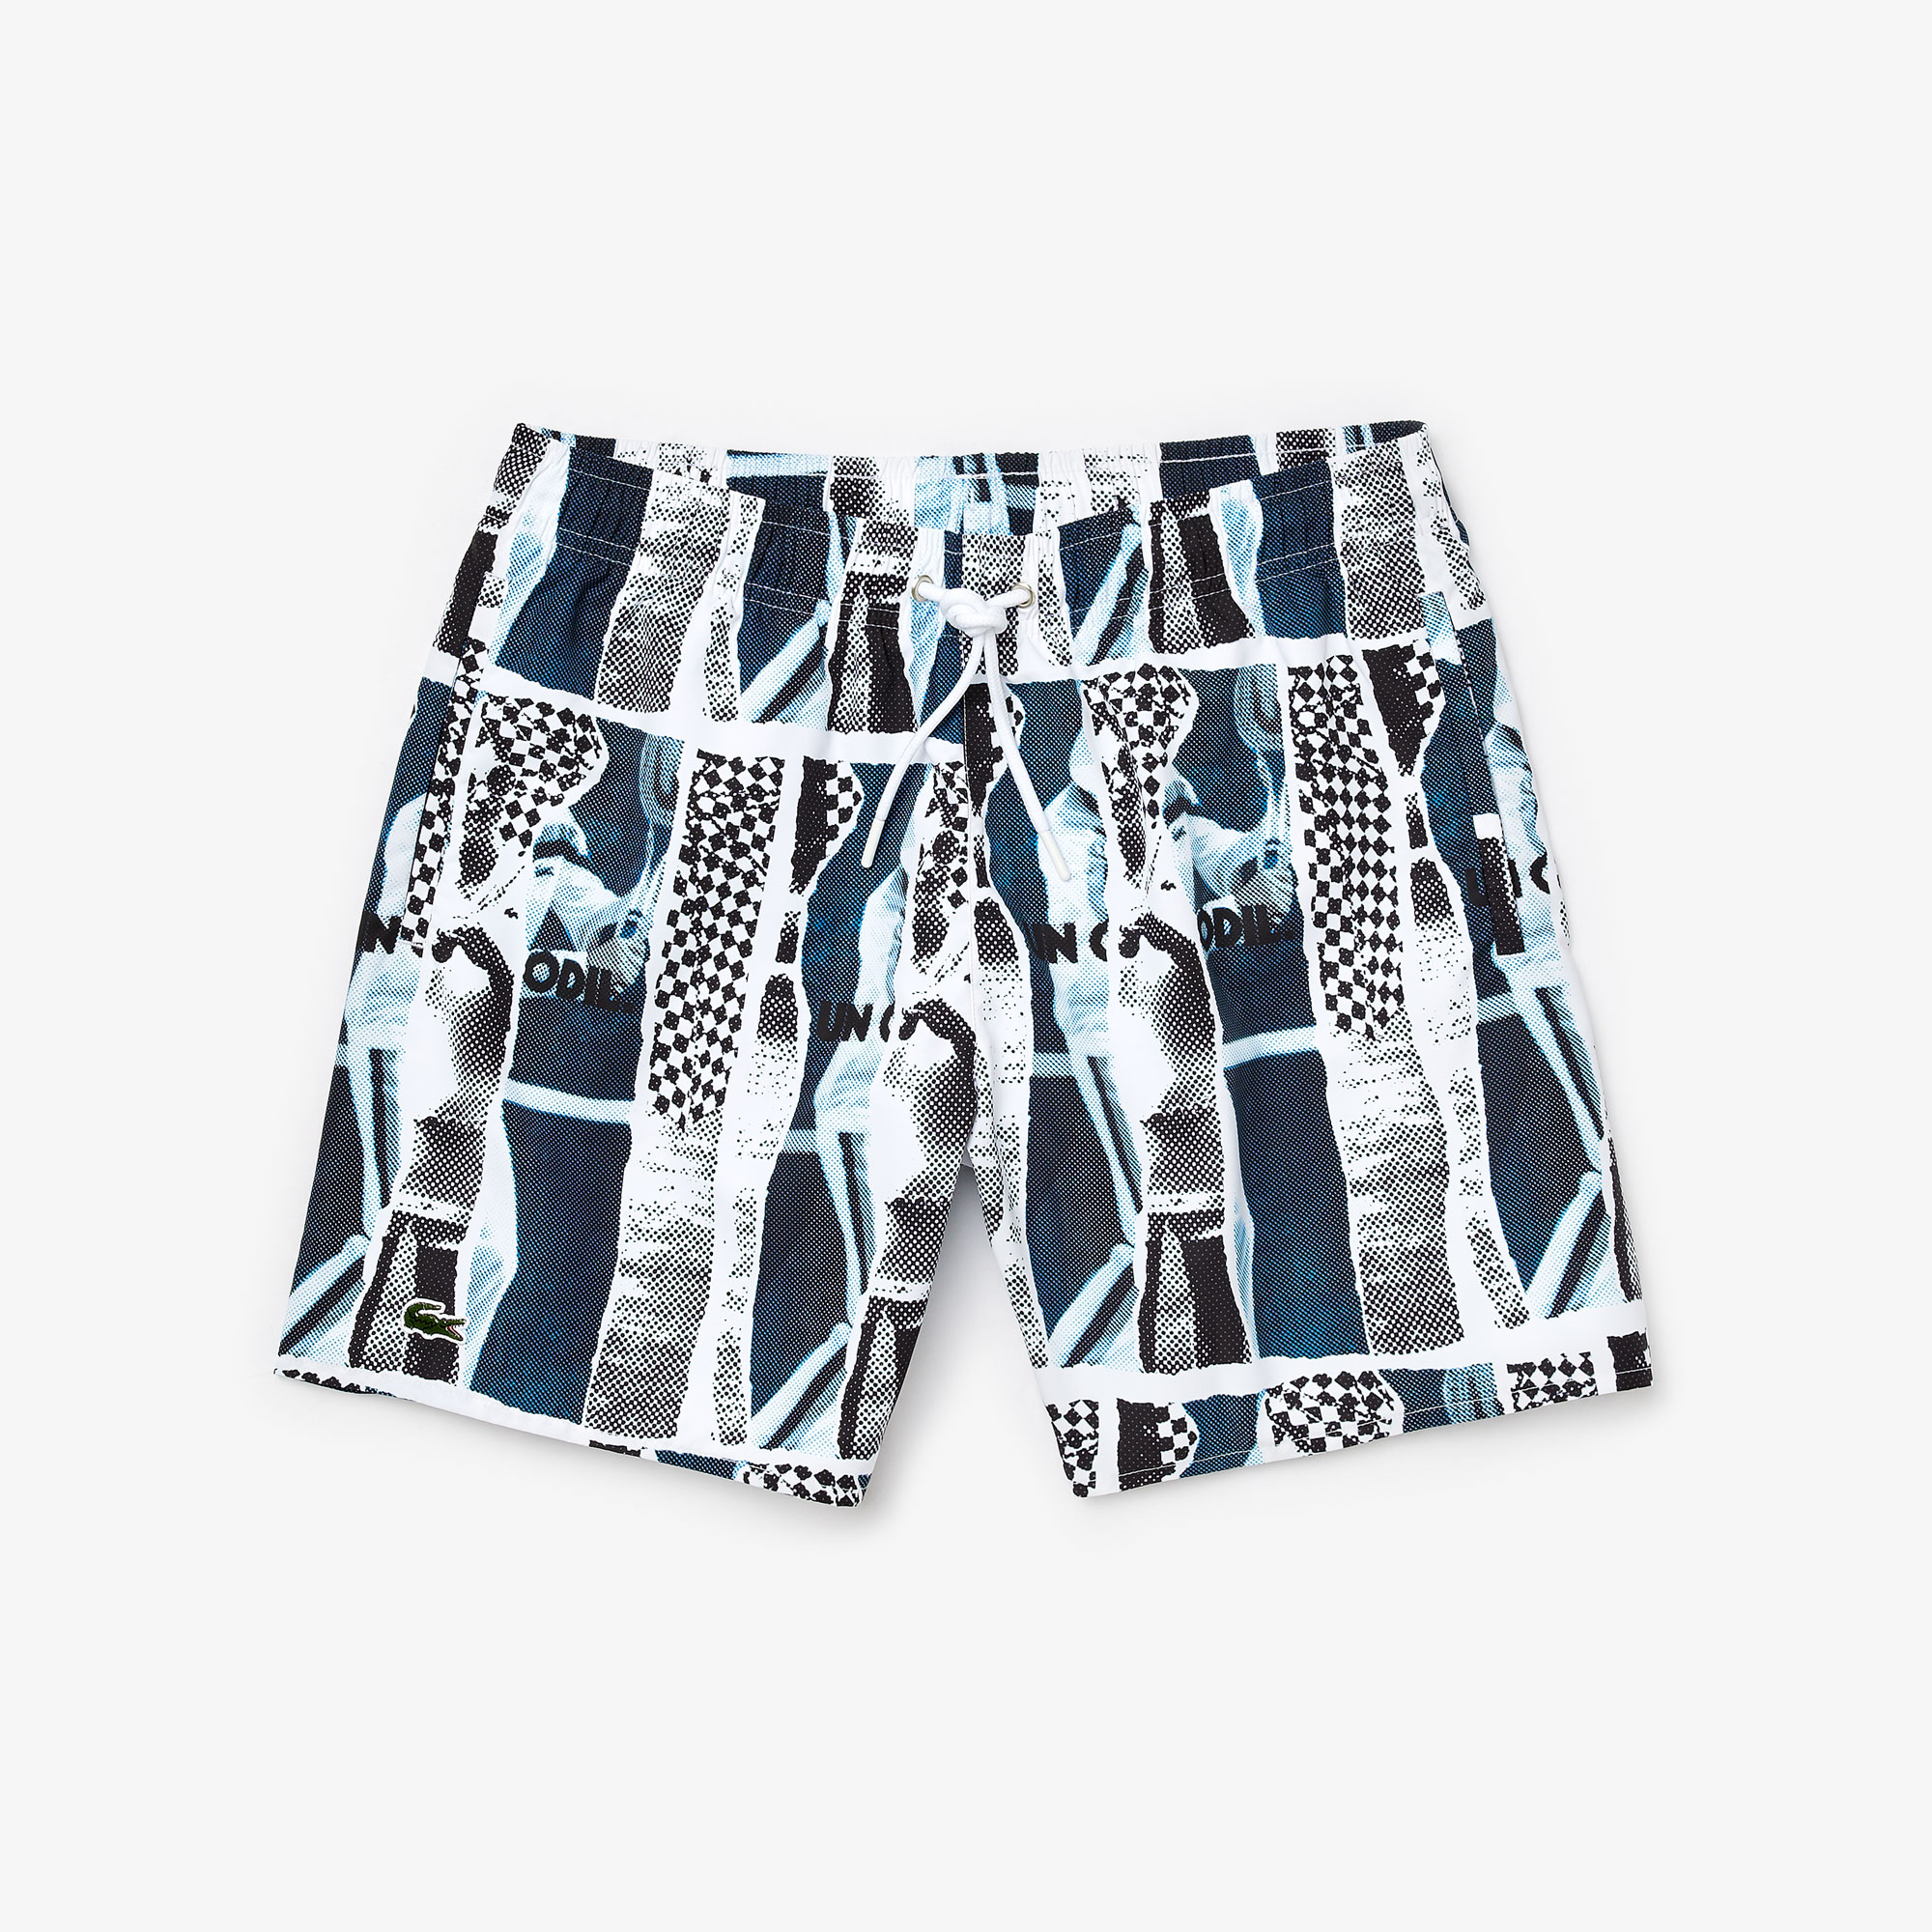 Men's Lacoste LIVE Graphic Print Lightweight Swimming Trunks